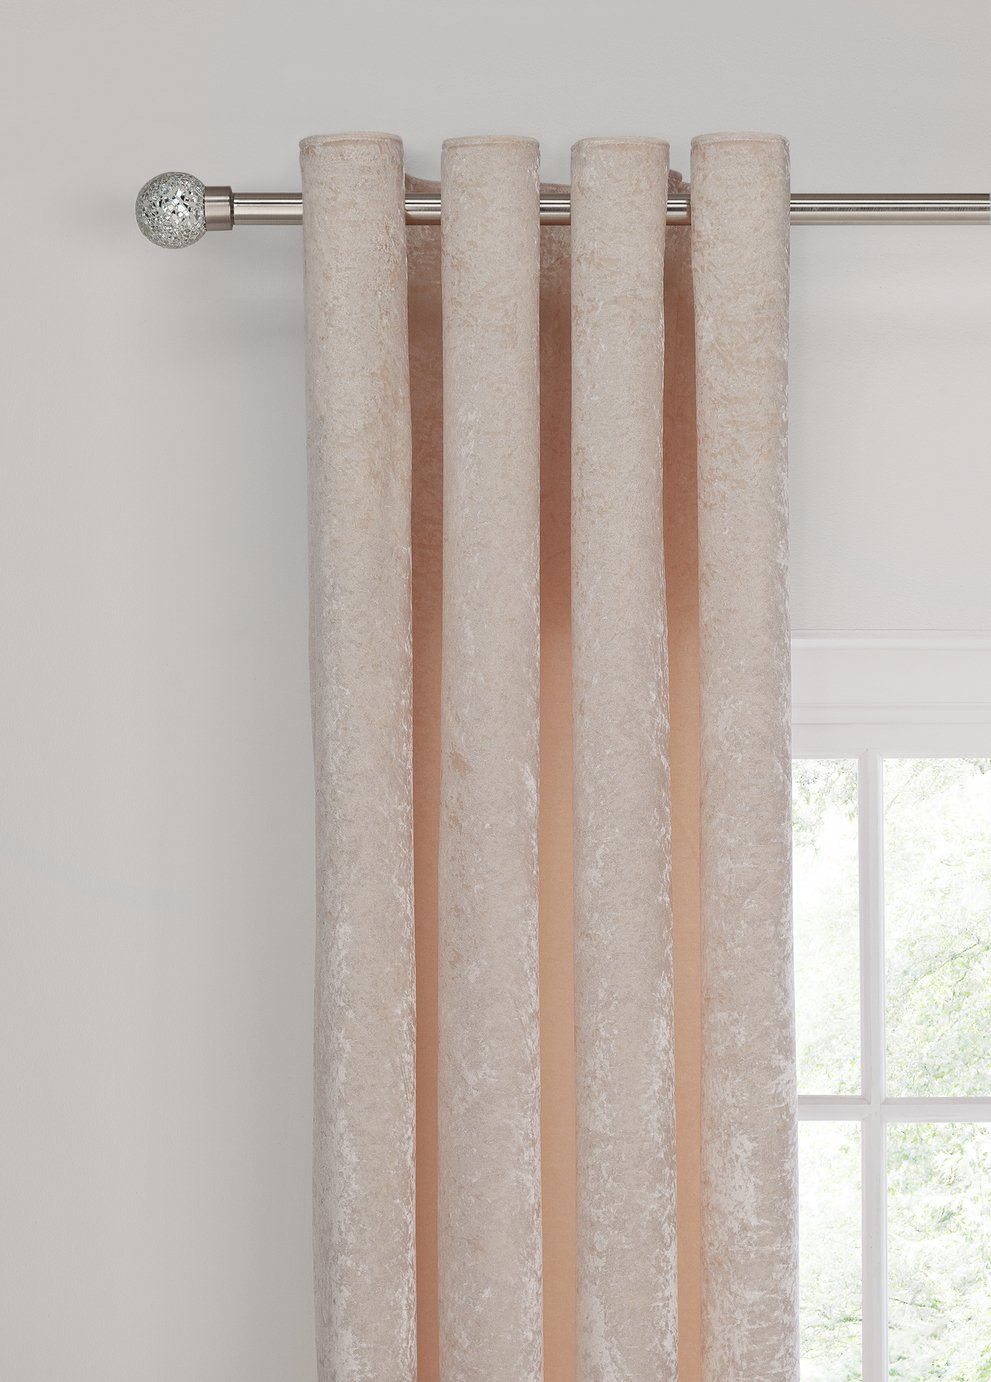 Argos Home Velvet Lined Eyelet Curtains - Champagne